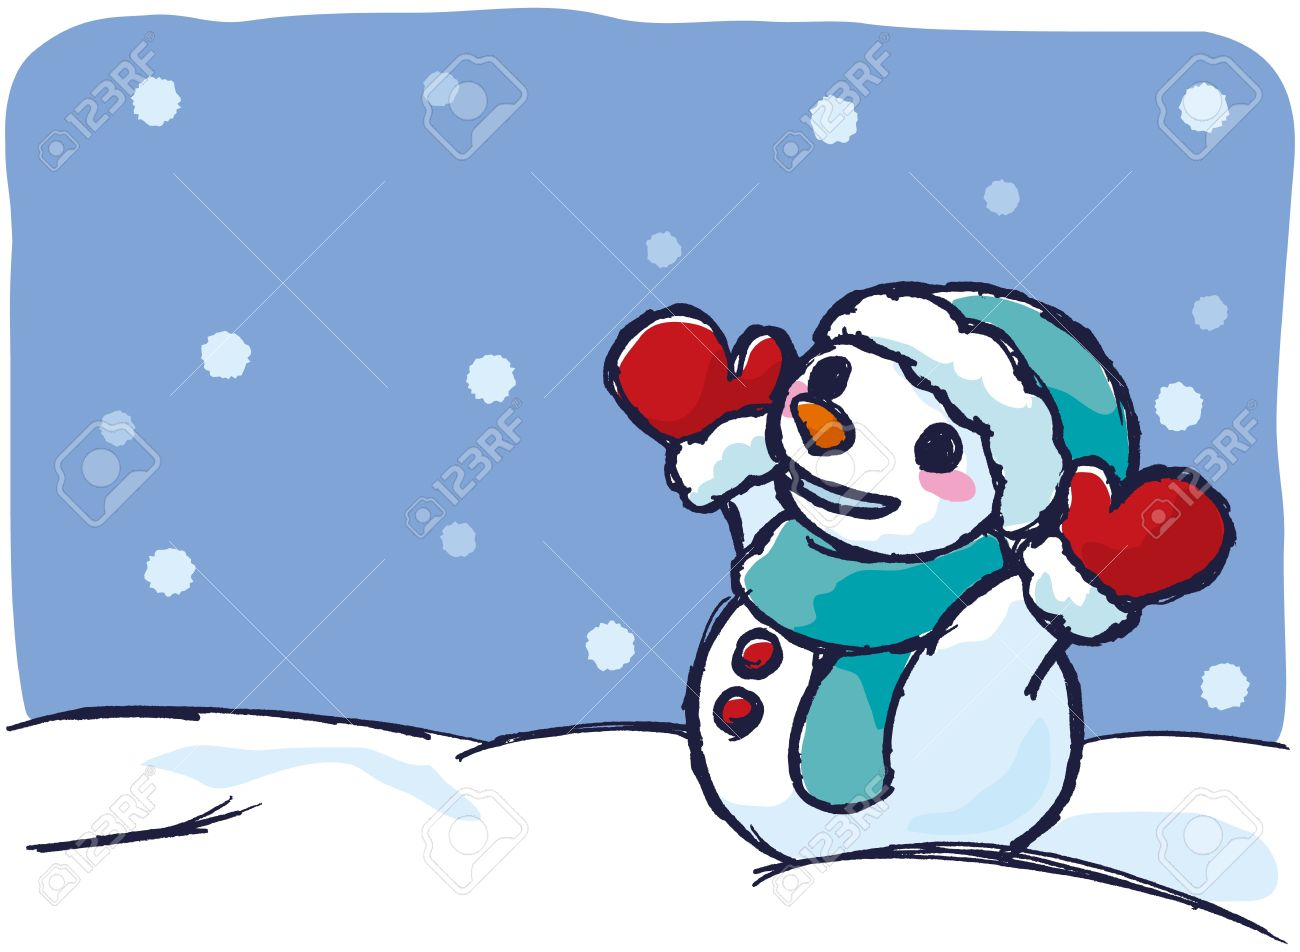 Clipart snowy picture transparent 26+ Snowy Clipart | ClipartLook picture transparent